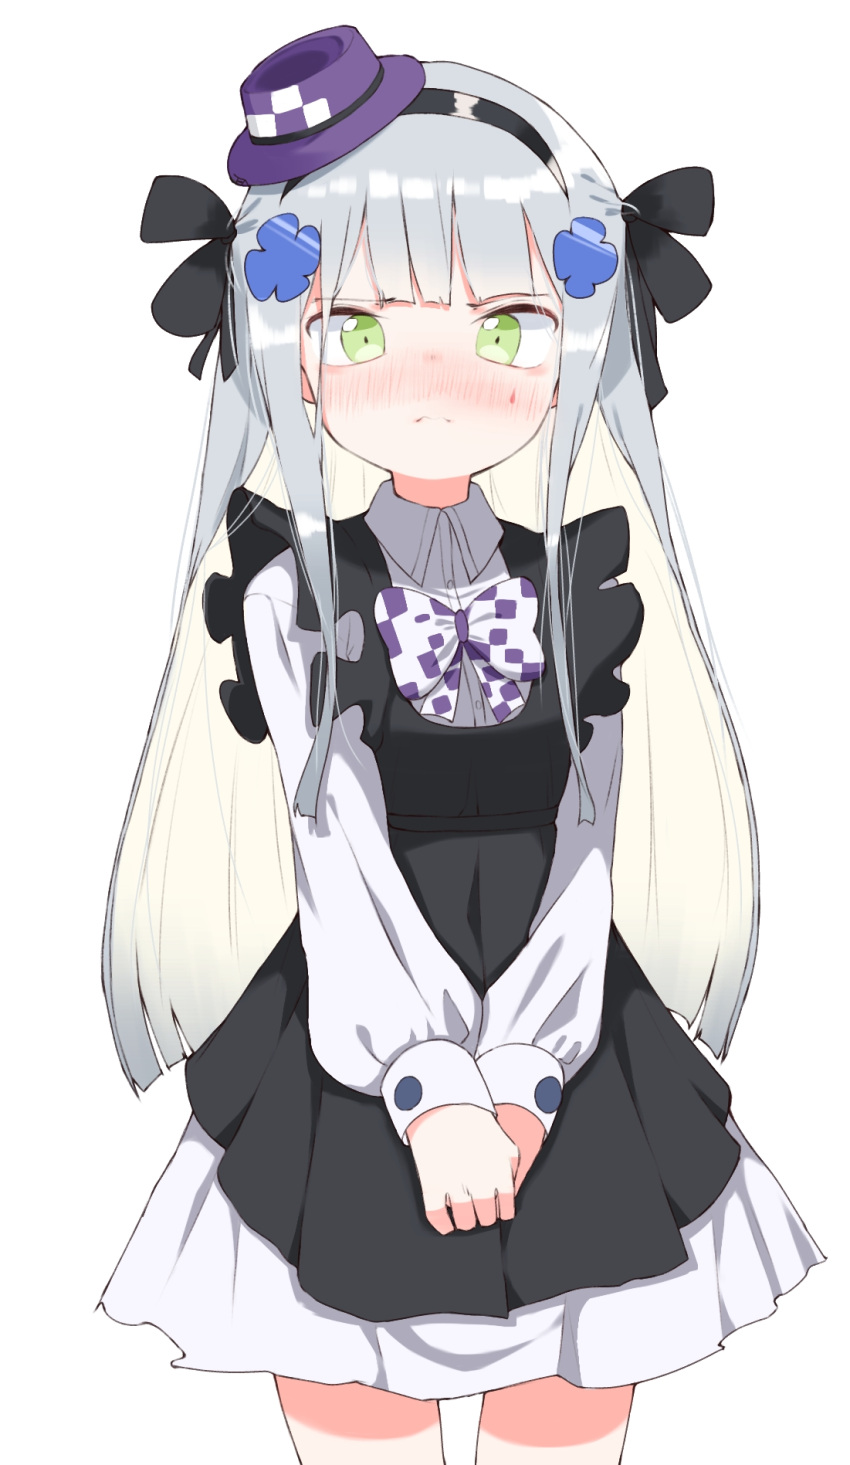 1girl 3: bangs black_bow black_dress black_hairband blush bow closed_mouth collared_shirt commentary cowboy_shot dress dress_shirt eyebrows_visible_through_hair facial_mark girls_frontline green_eyes hair_bow hair_ornament hairband hat highres hk416_(girls_frontline) long_hair long_sleeves mini_hat nose_blush pleated_skirt puffy_long_sleeves puffy_sleeves purple_headwear shirt silver_hair simple_background skirt sleeveless sleeveless_dress sleeves_past_wrists solo tilted_headwear tosyeo very_long_hair white_background white_bow white_shirt white_skirt